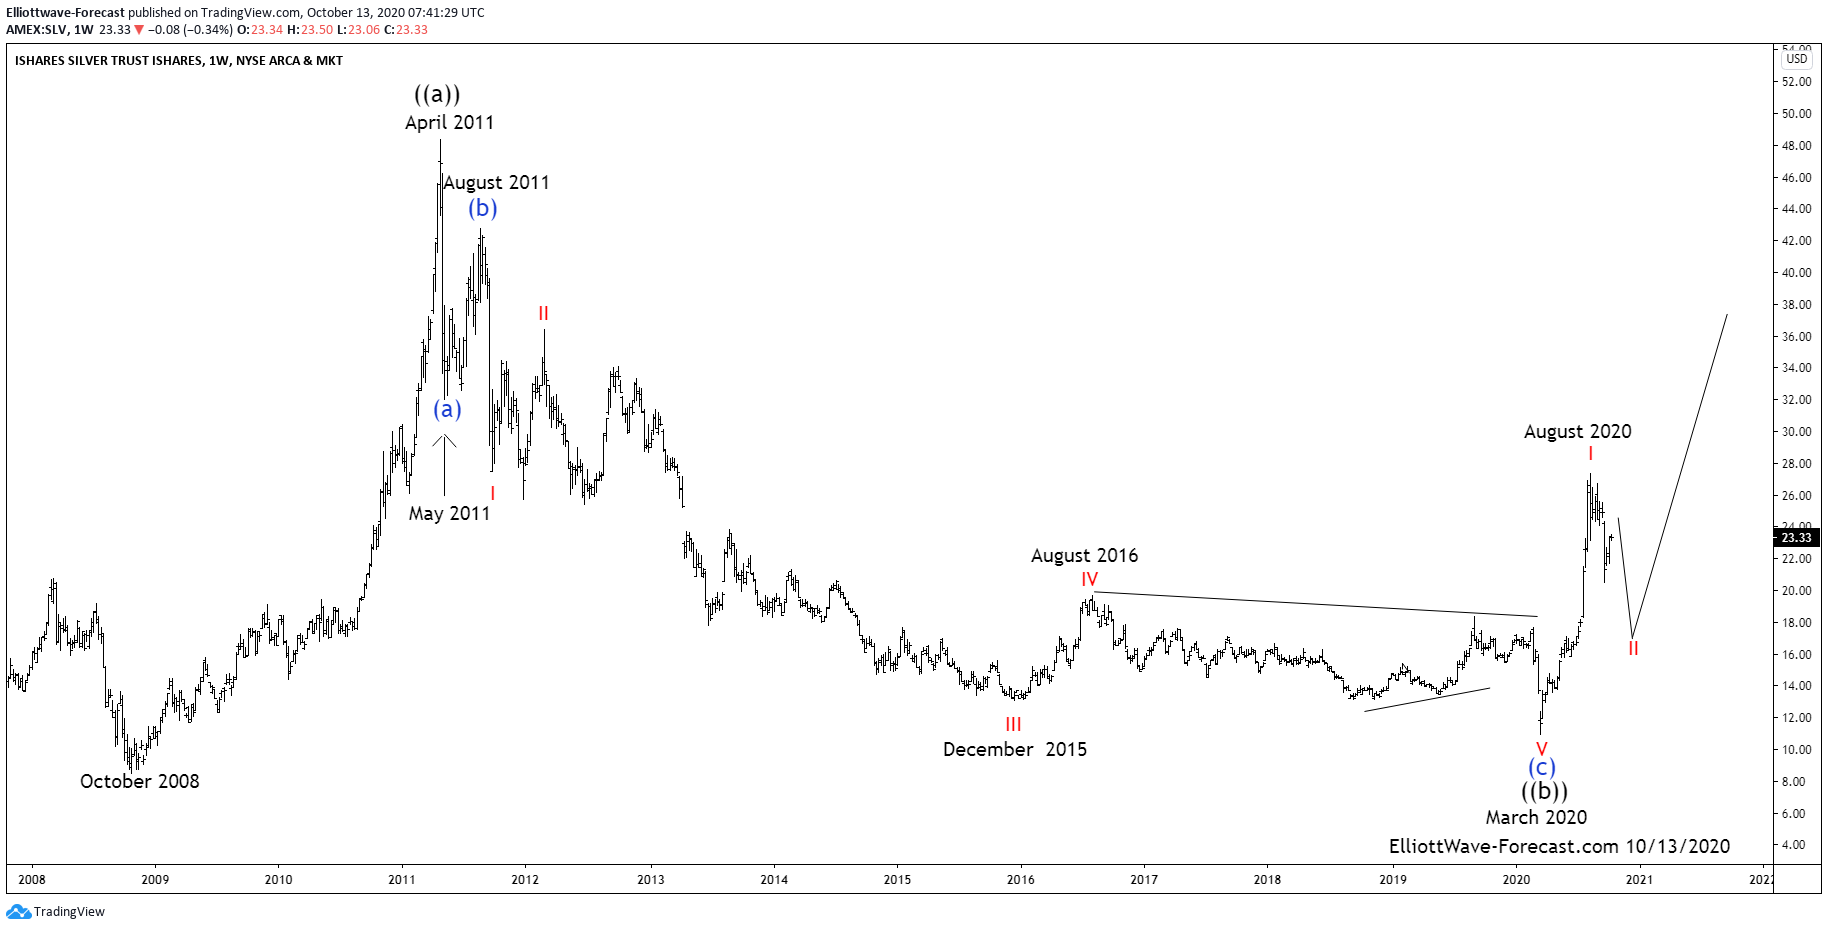 $SLV Ishares Silver Trust Larger Cycles and Elliott Wave